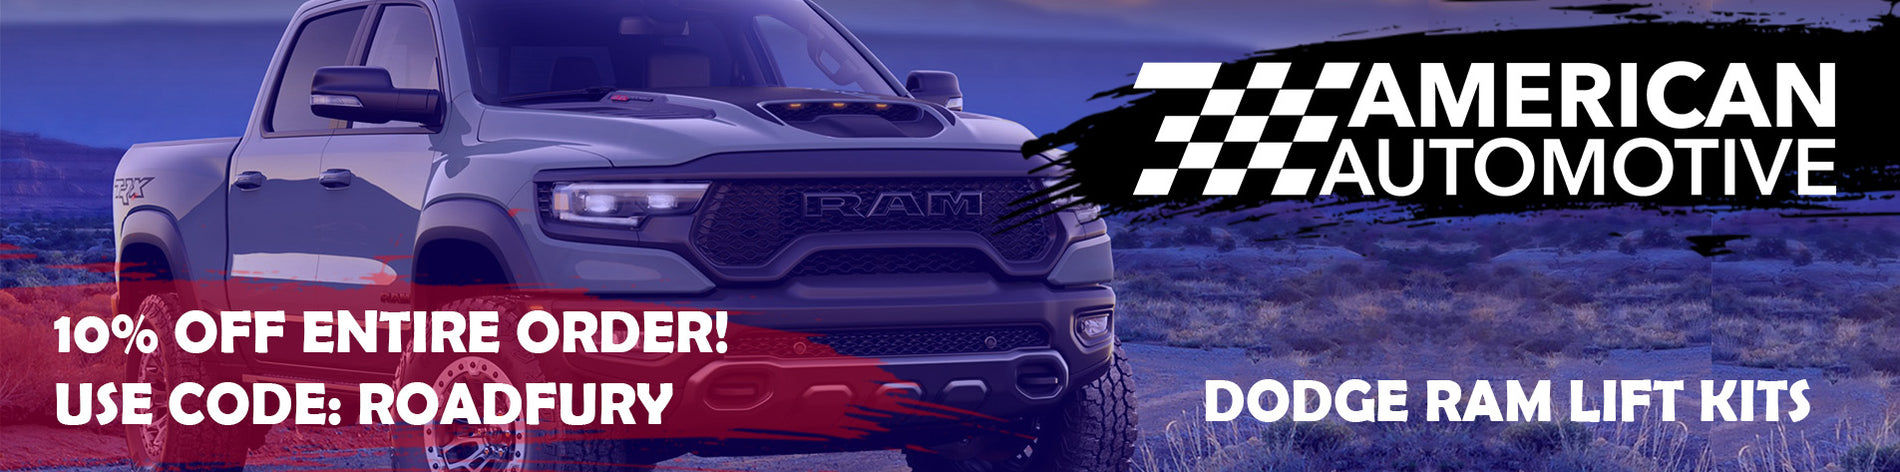 Website banner dodge ram with code